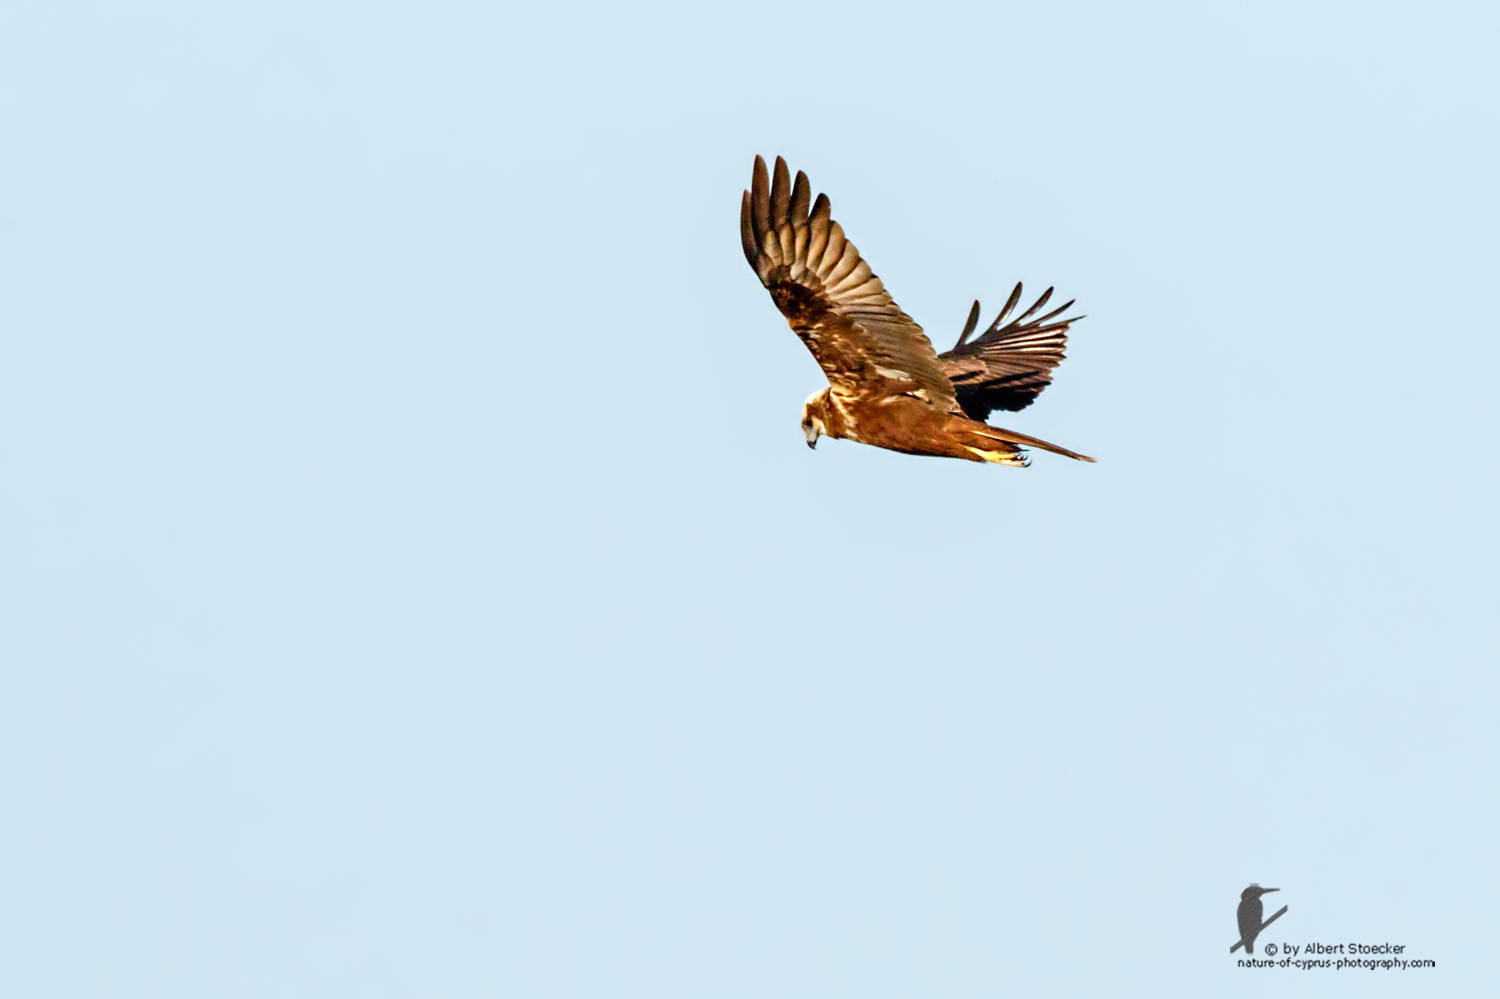 Circus aeroginosus  - Western Marsh Harrier - Rohrweihe, Cyprus, Zakai Marsh, March 2016